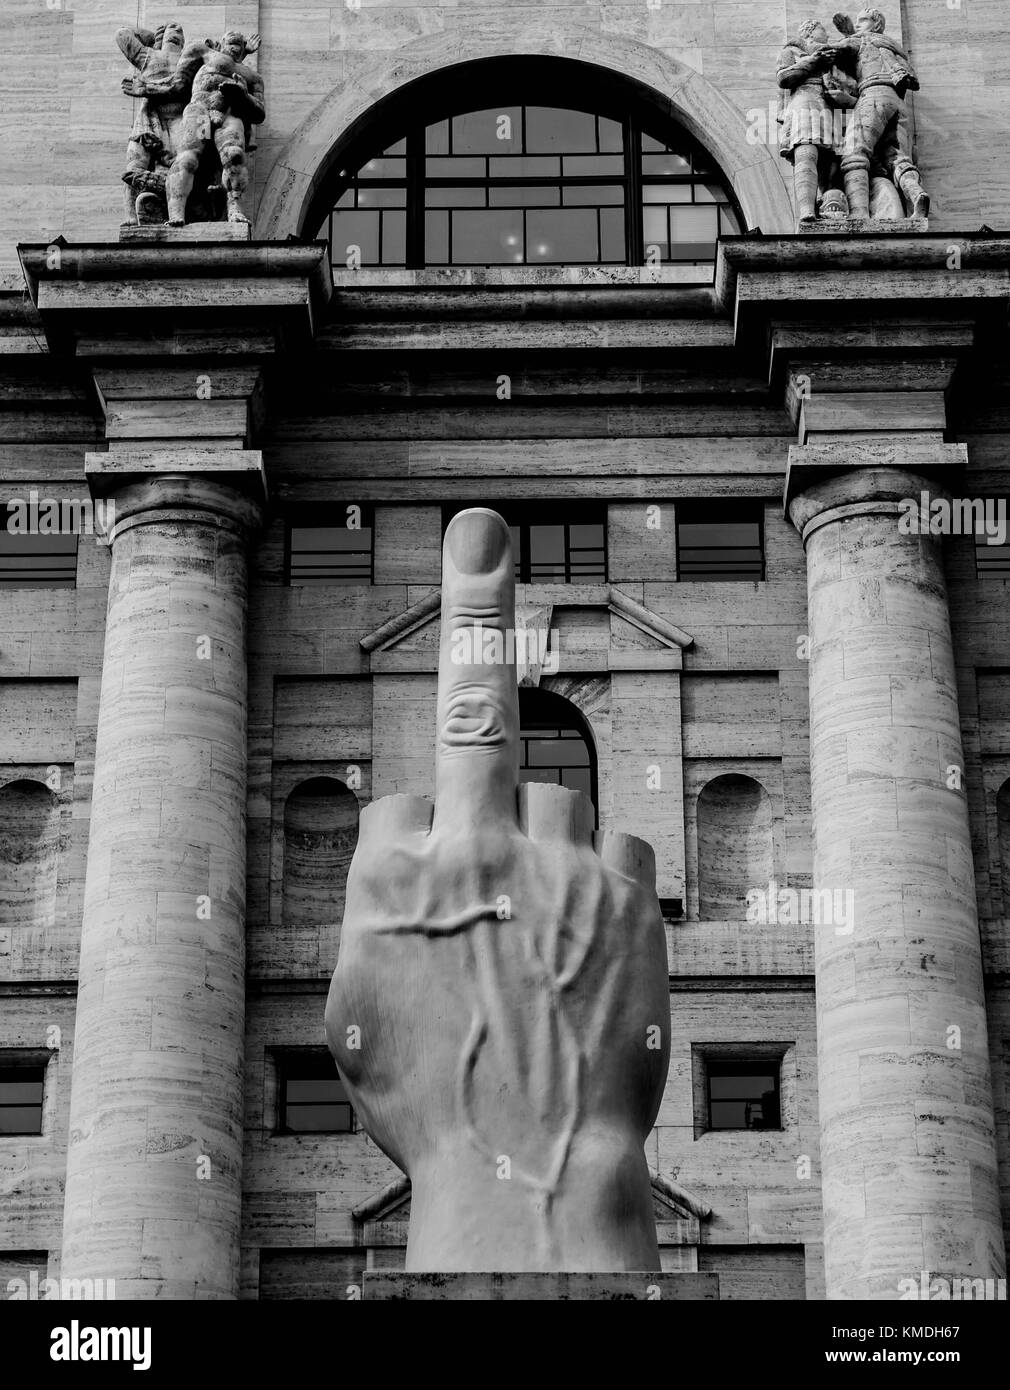 THE MIDDLE FINGER, MAURIZIO CATTELAN, MILAN - Stock Image